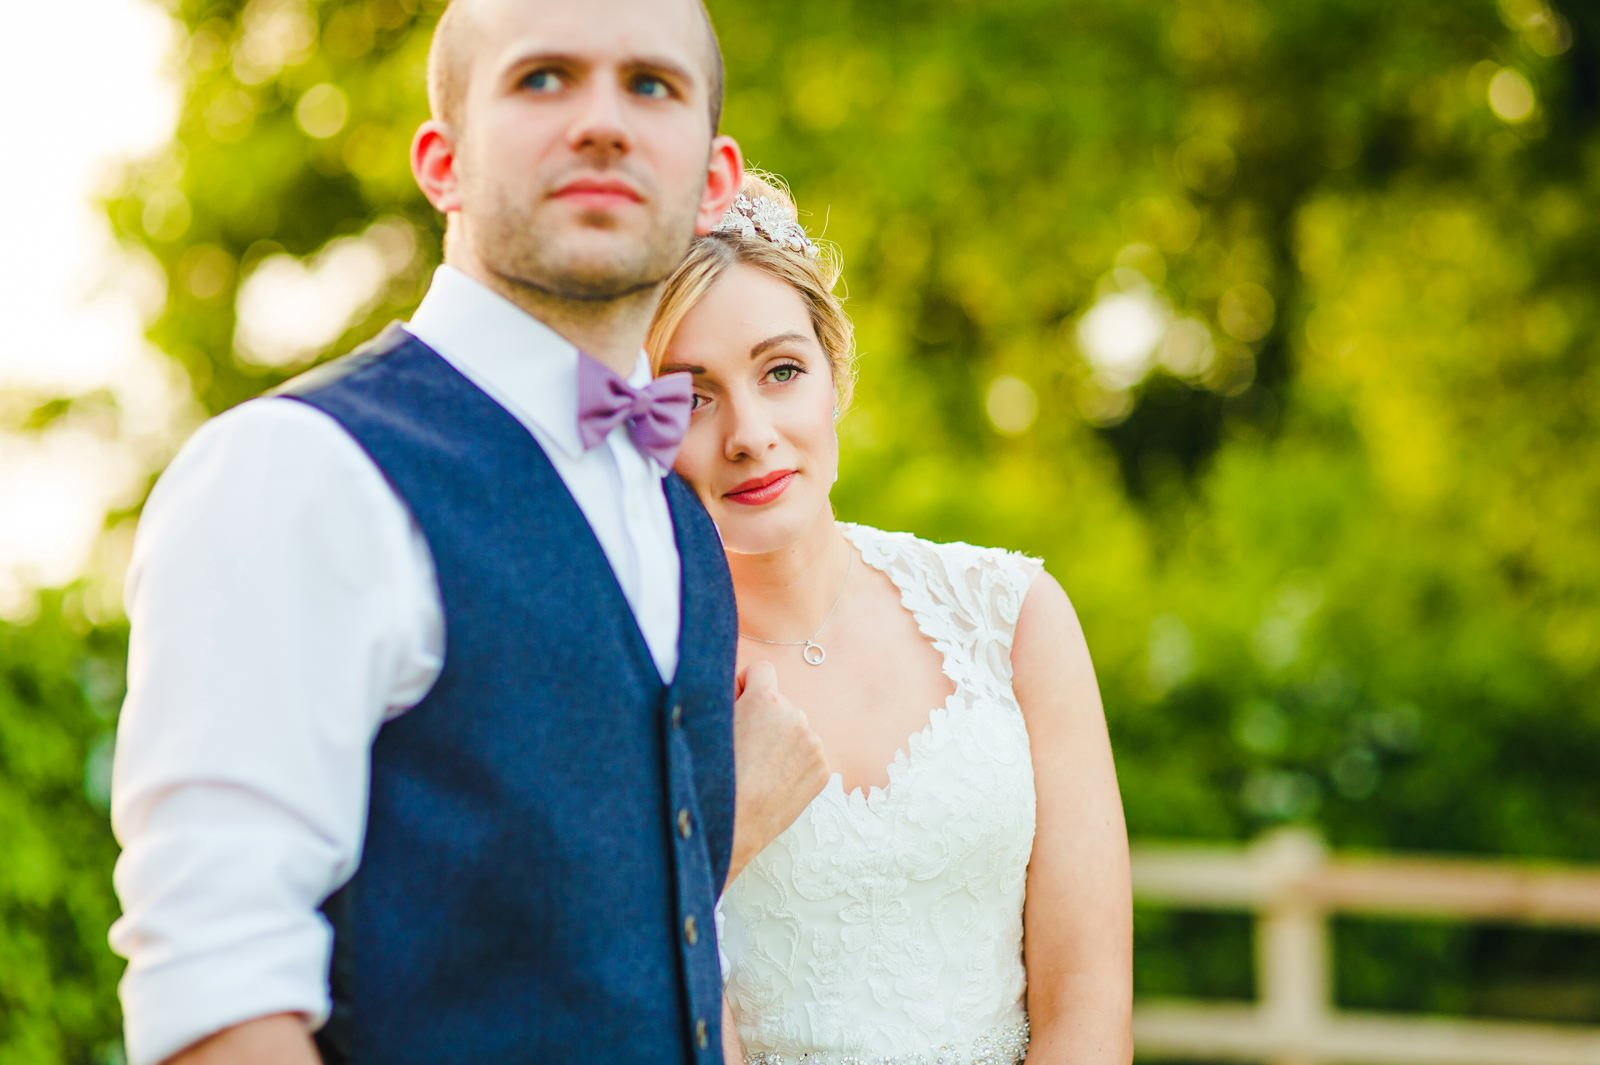 millers of netley wedding 95 - Millers Of Netley wedding, Dorrington, Shrewsbury | Emma + Ben